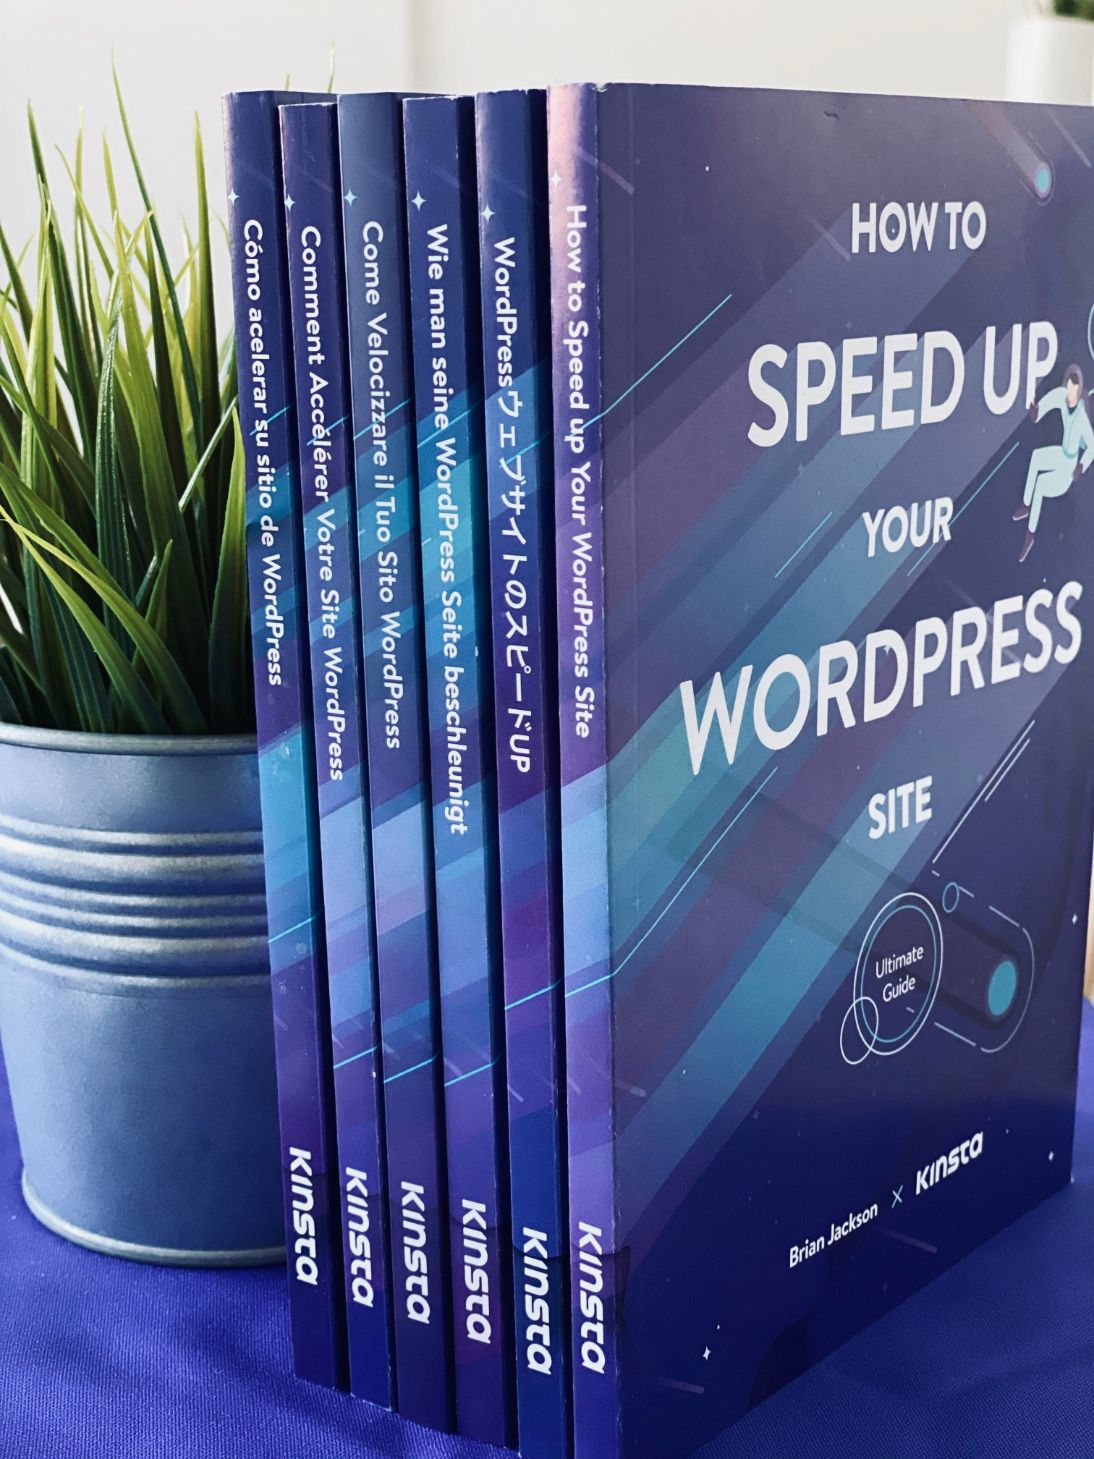 Kinsta Speed up WordPress books